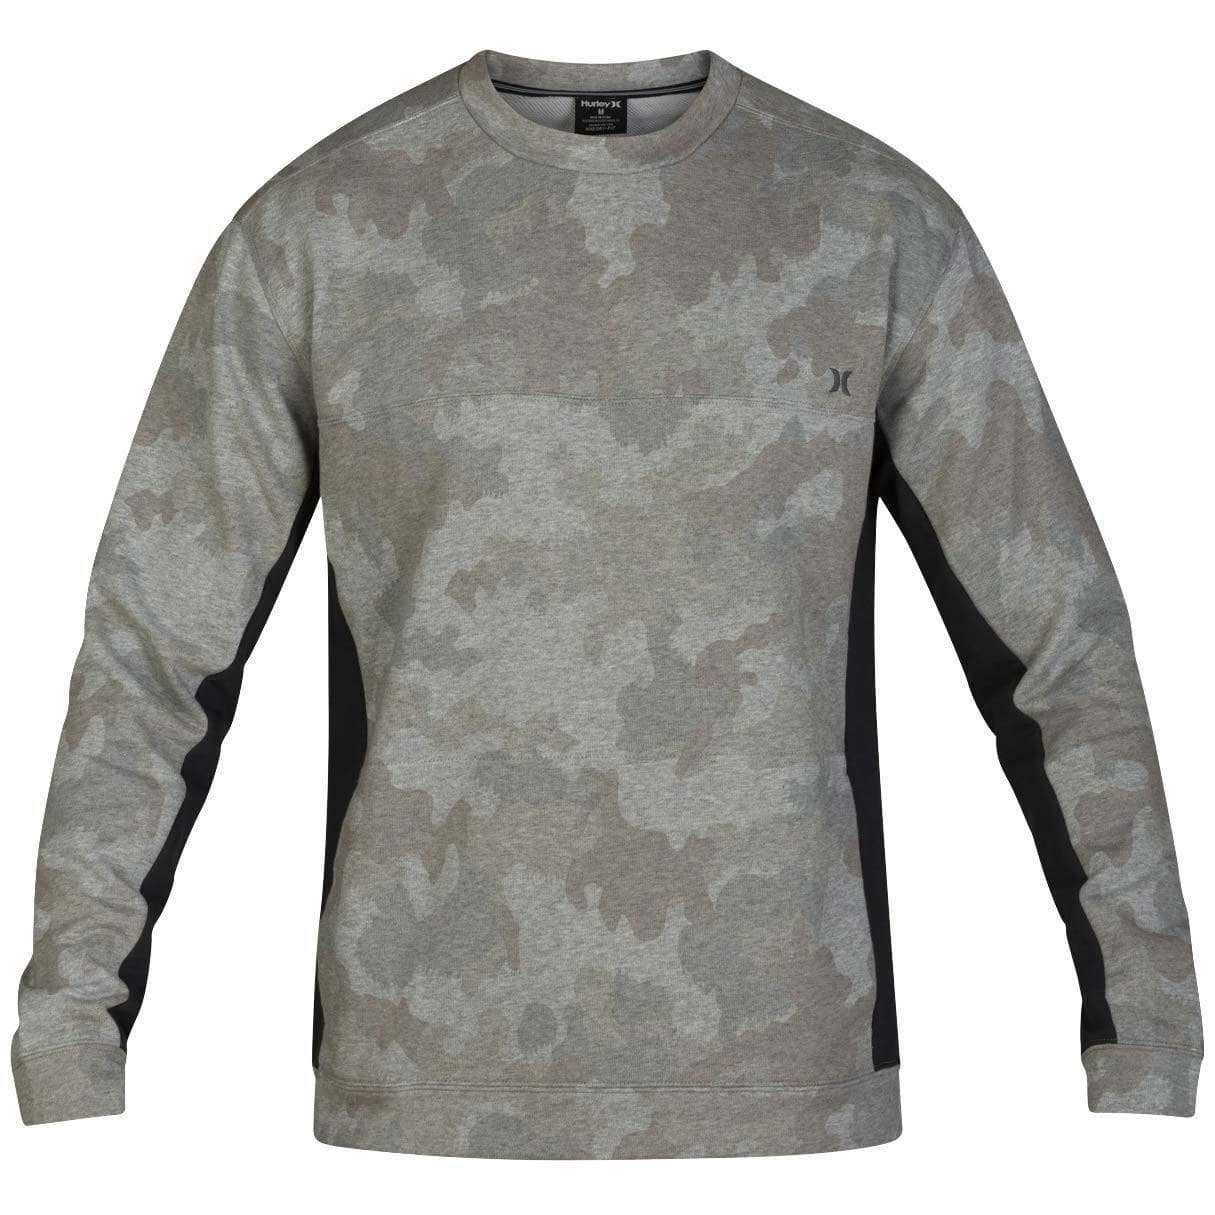 Hurley Mens Graphic Sweatshirt Hurley Dri-Fit Naturals Fleece Crew - Camo Green